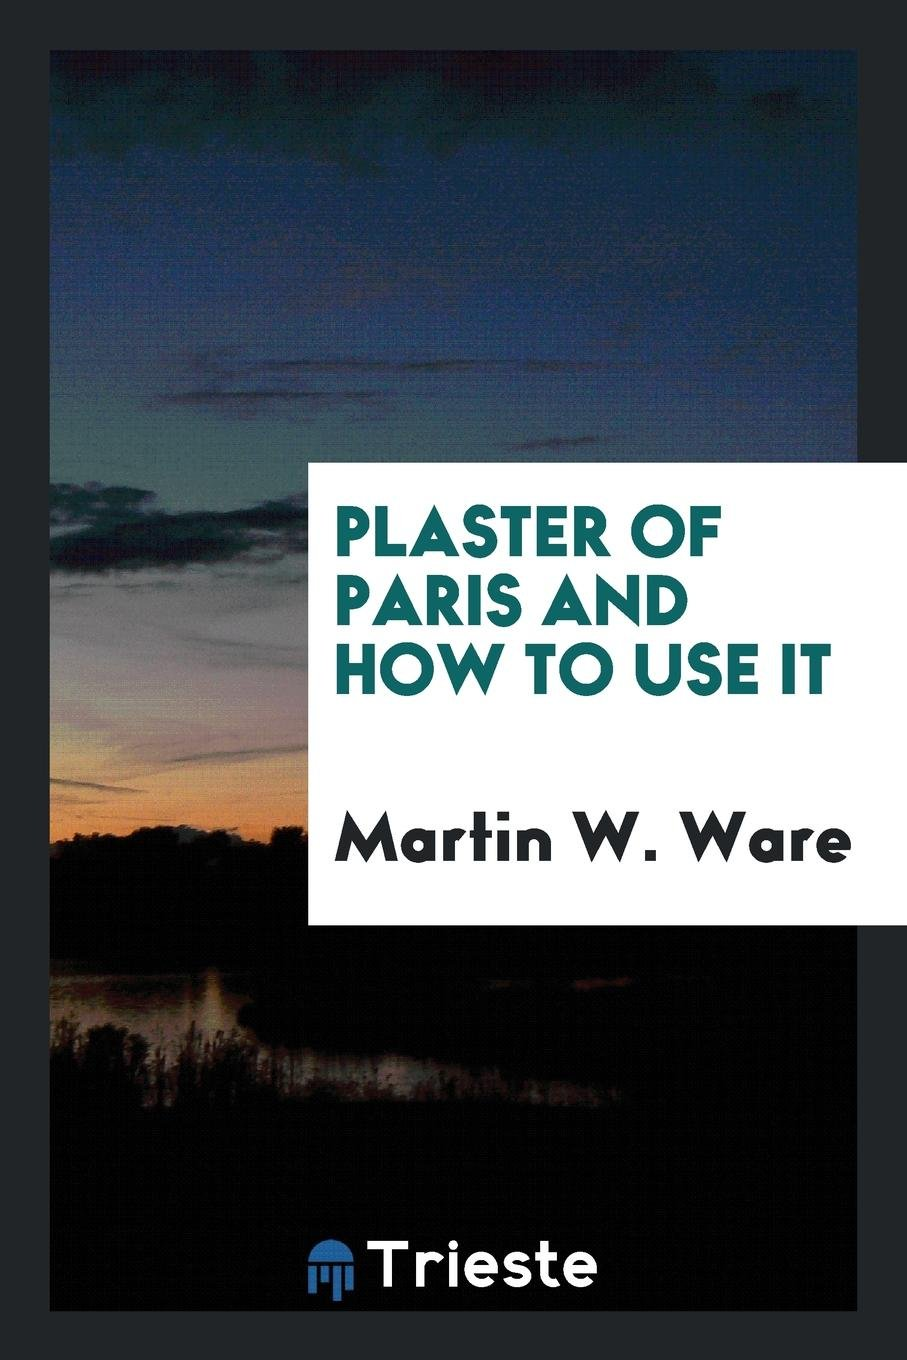 Plaster of Paris and how to use it: Martin W  Ware